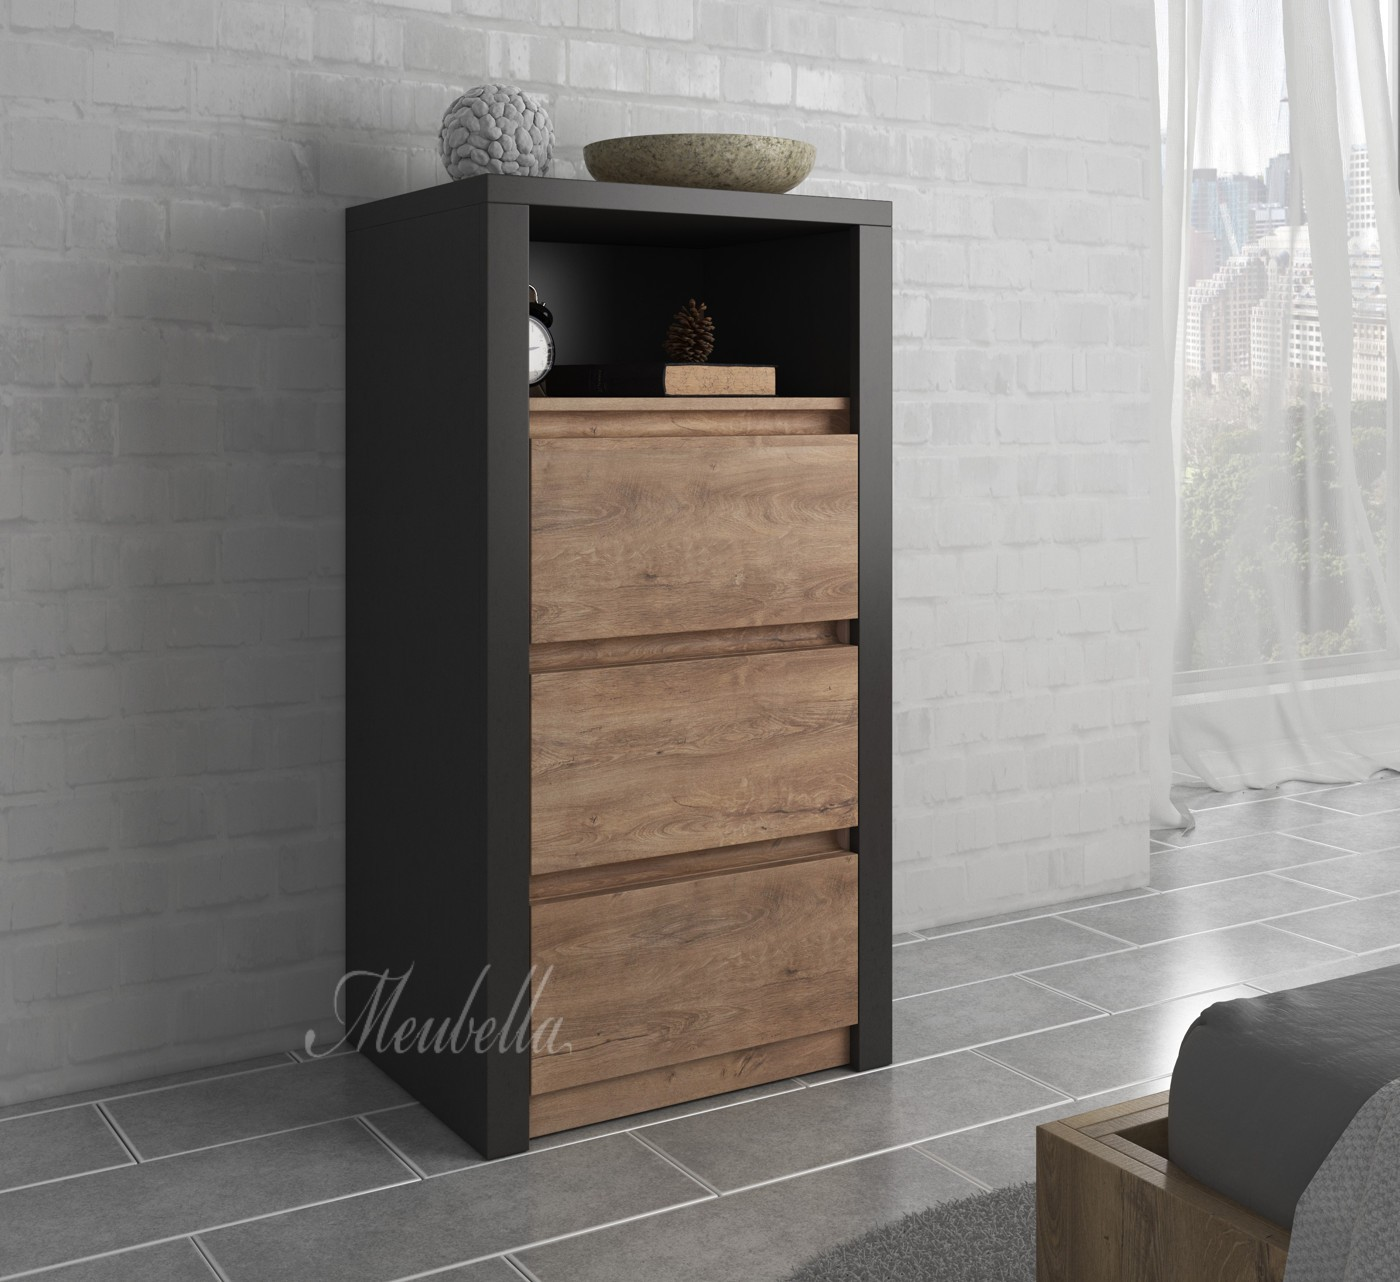 commode monaco eiken grijs 50 cm meubella. Black Bedroom Furniture Sets. Home Design Ideas